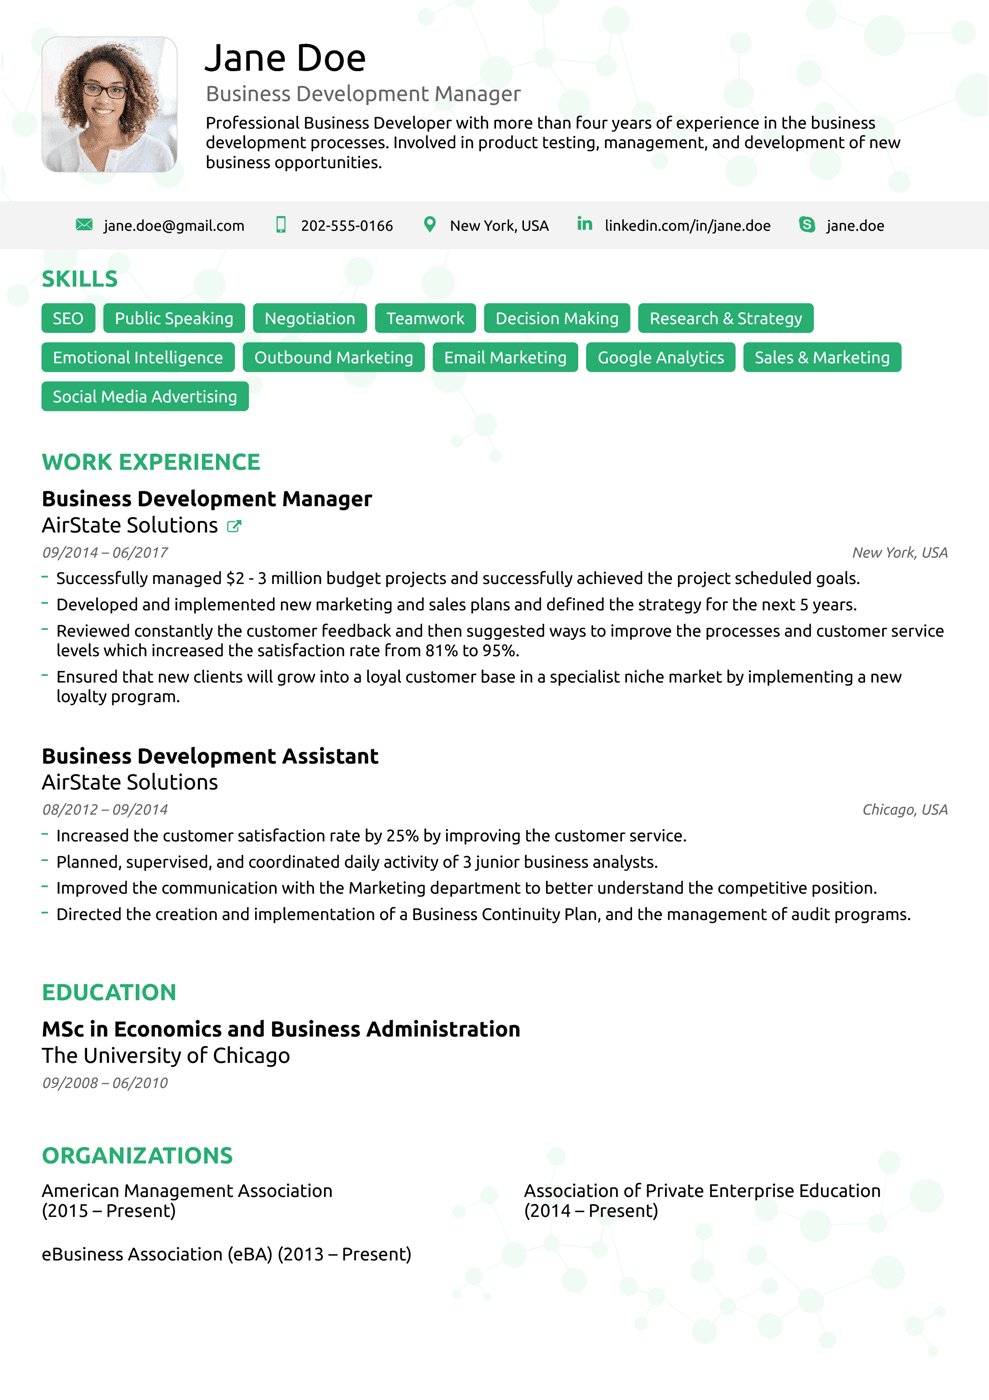 8+ Best Online Resume Templates of 2018 [Download & Customize]